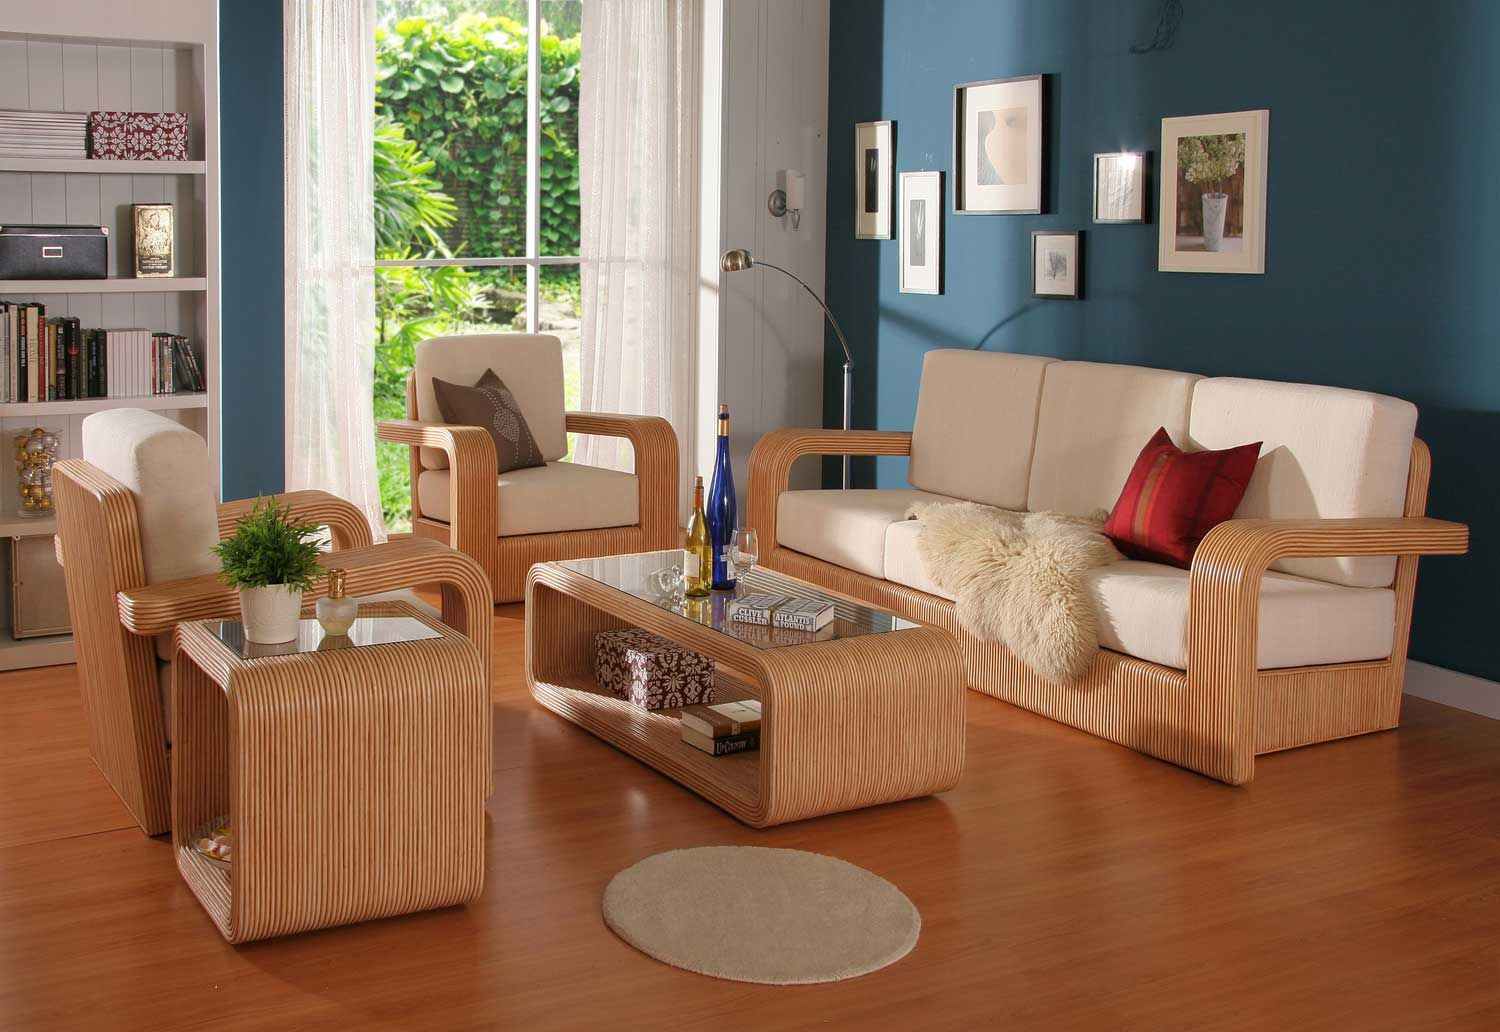 Merveilleux Wooden Finish Living Room Is More Beautiful Then Other Living Room. It Is  Very Difficult To Design. Wooden Finish Room Is More Expens.